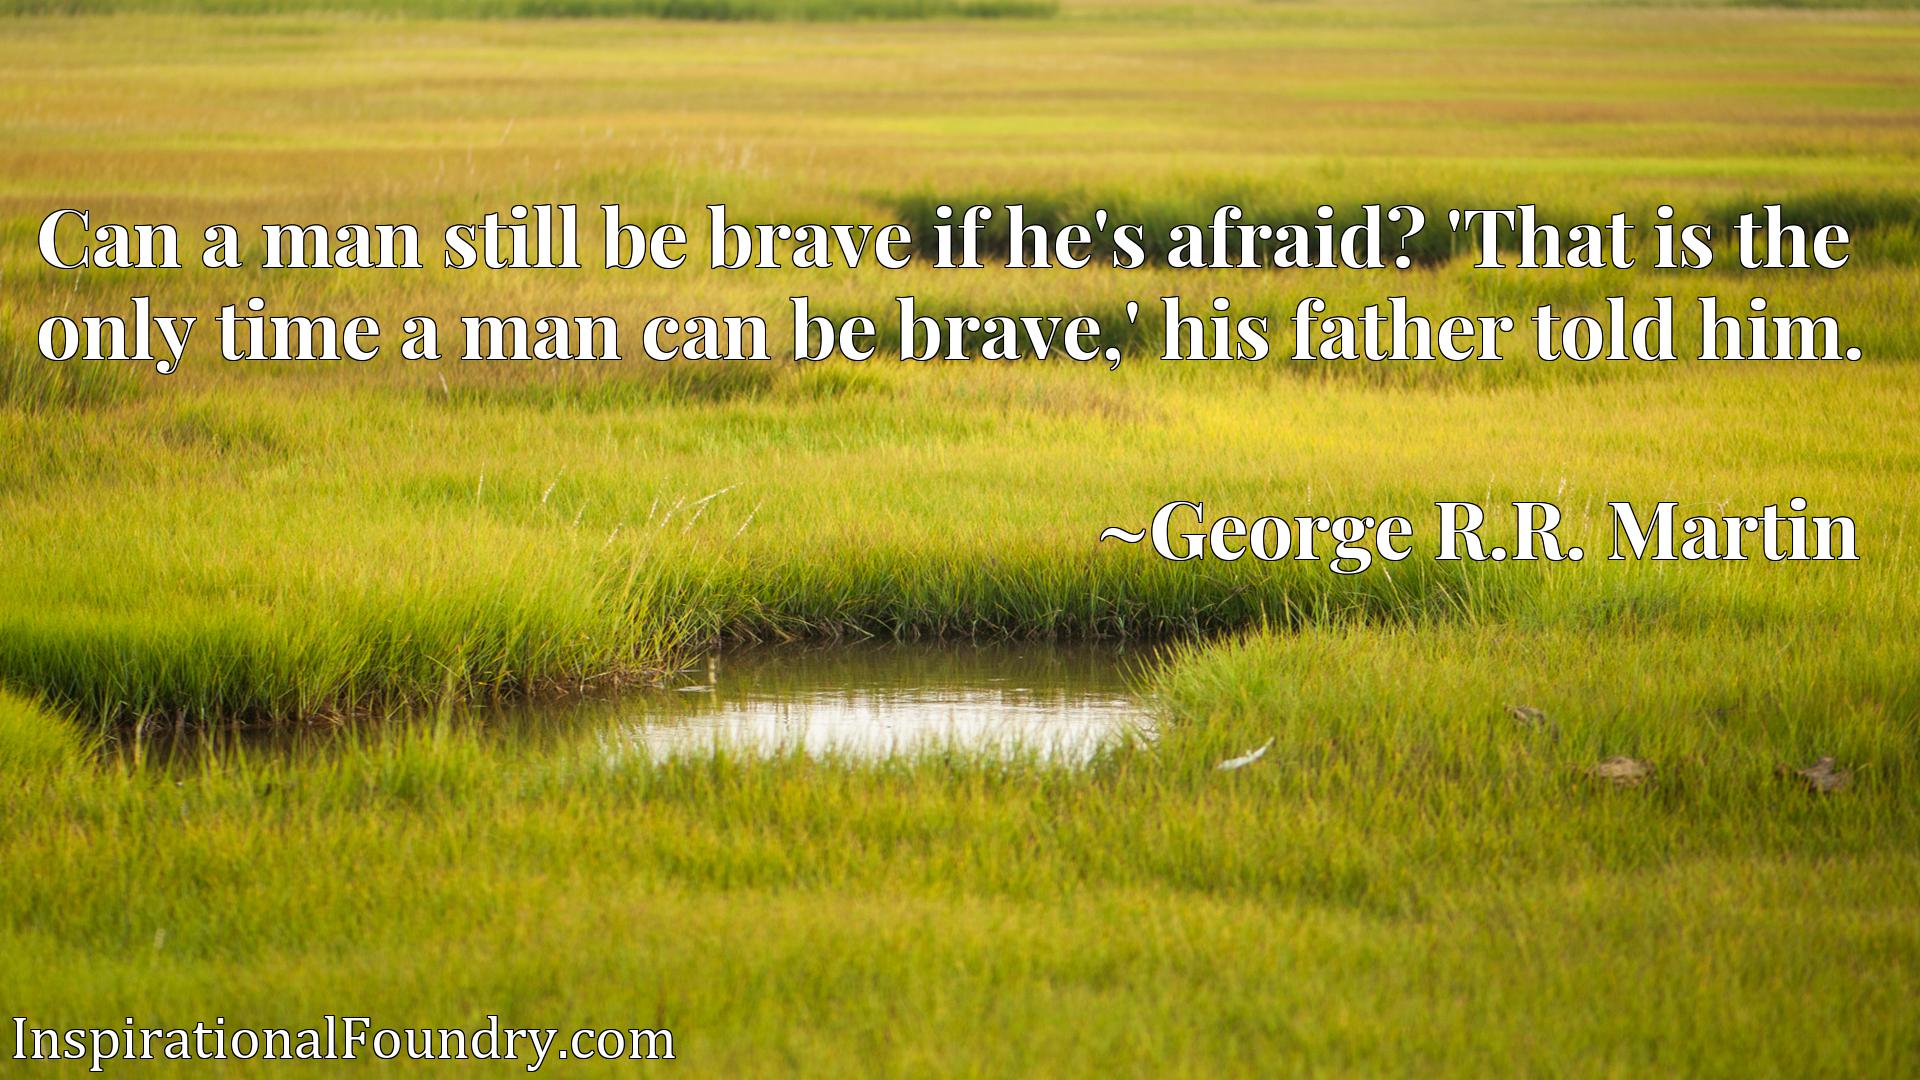 Can a man still be brave if he's afraid? 'That is the only time a man can be brave,' his father told him.